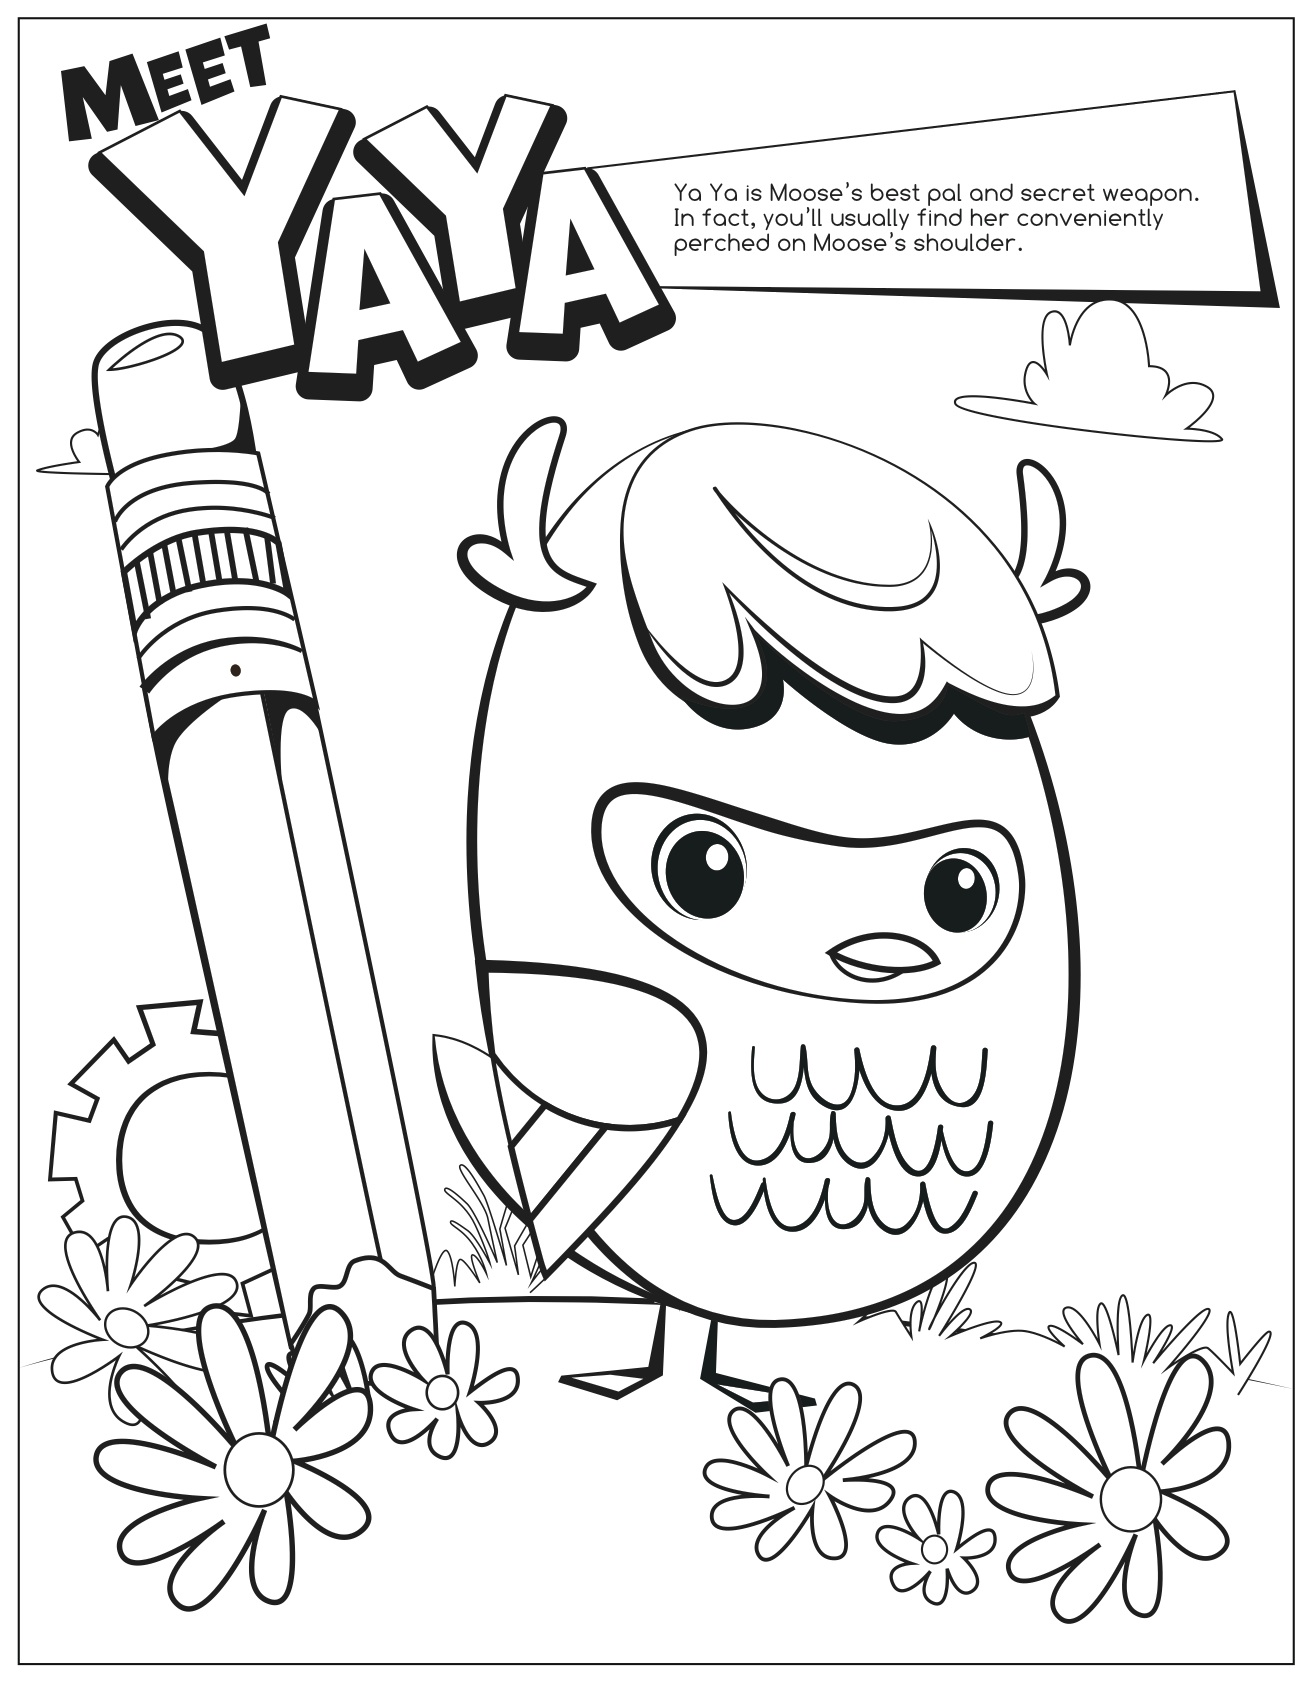 coloring math pages math coloring pages download and print math coloring pages math pages coloring